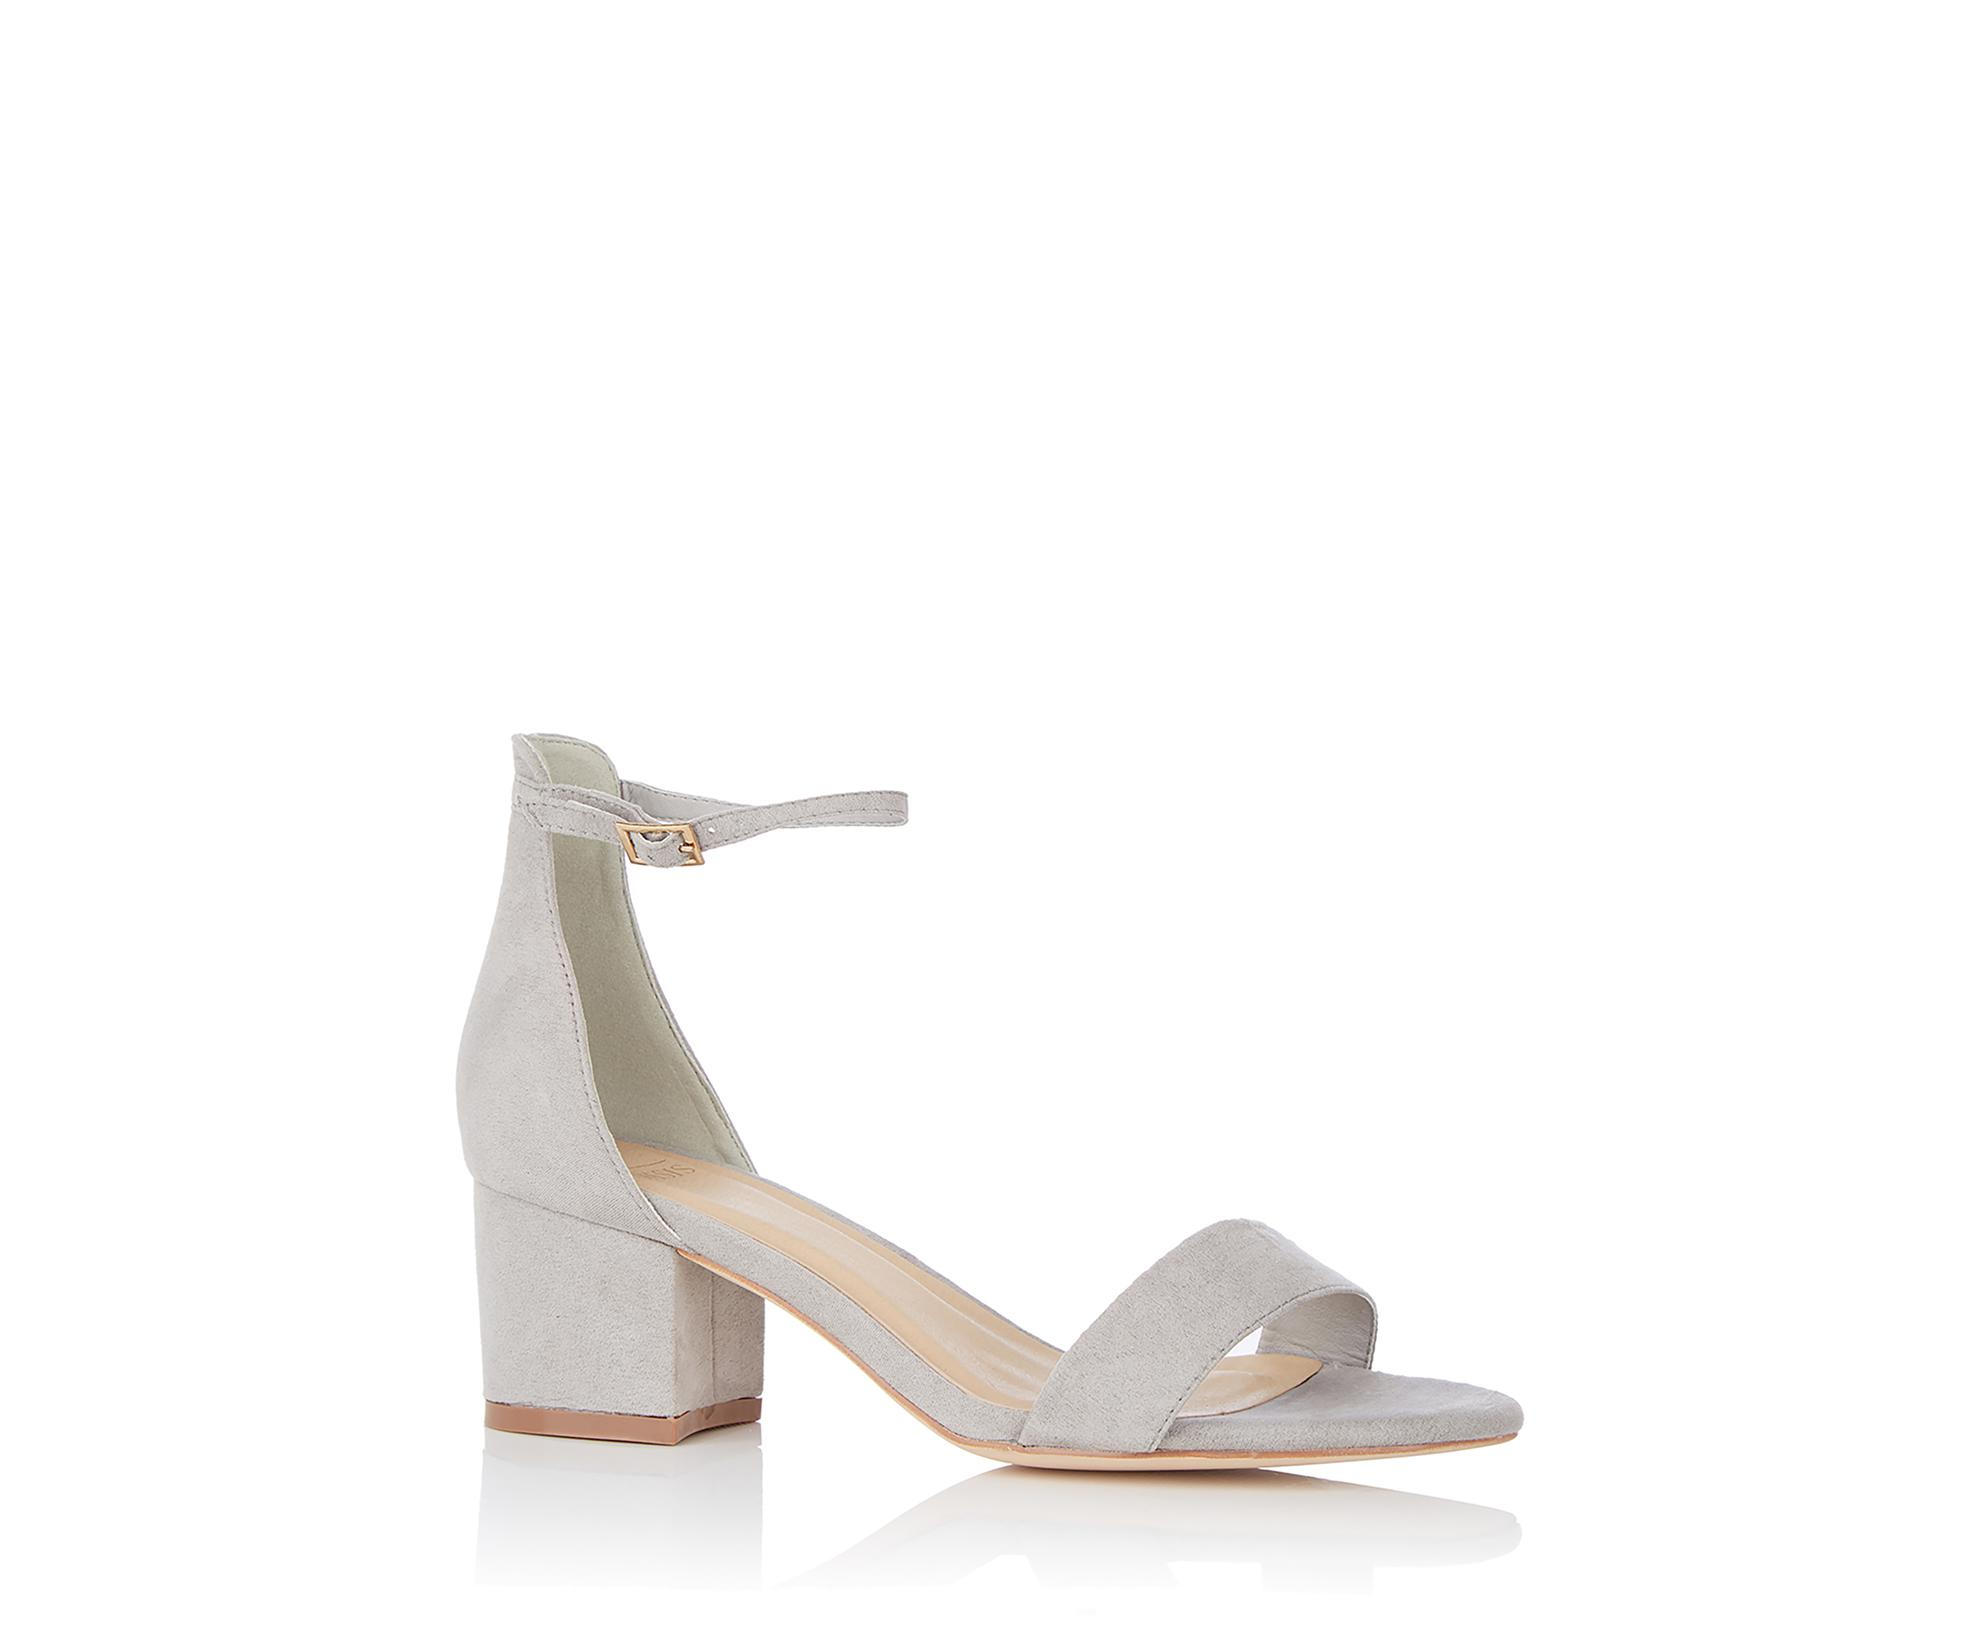 4e033f1741a3 Oasis Jane Block Sandal in Gray - Lyst